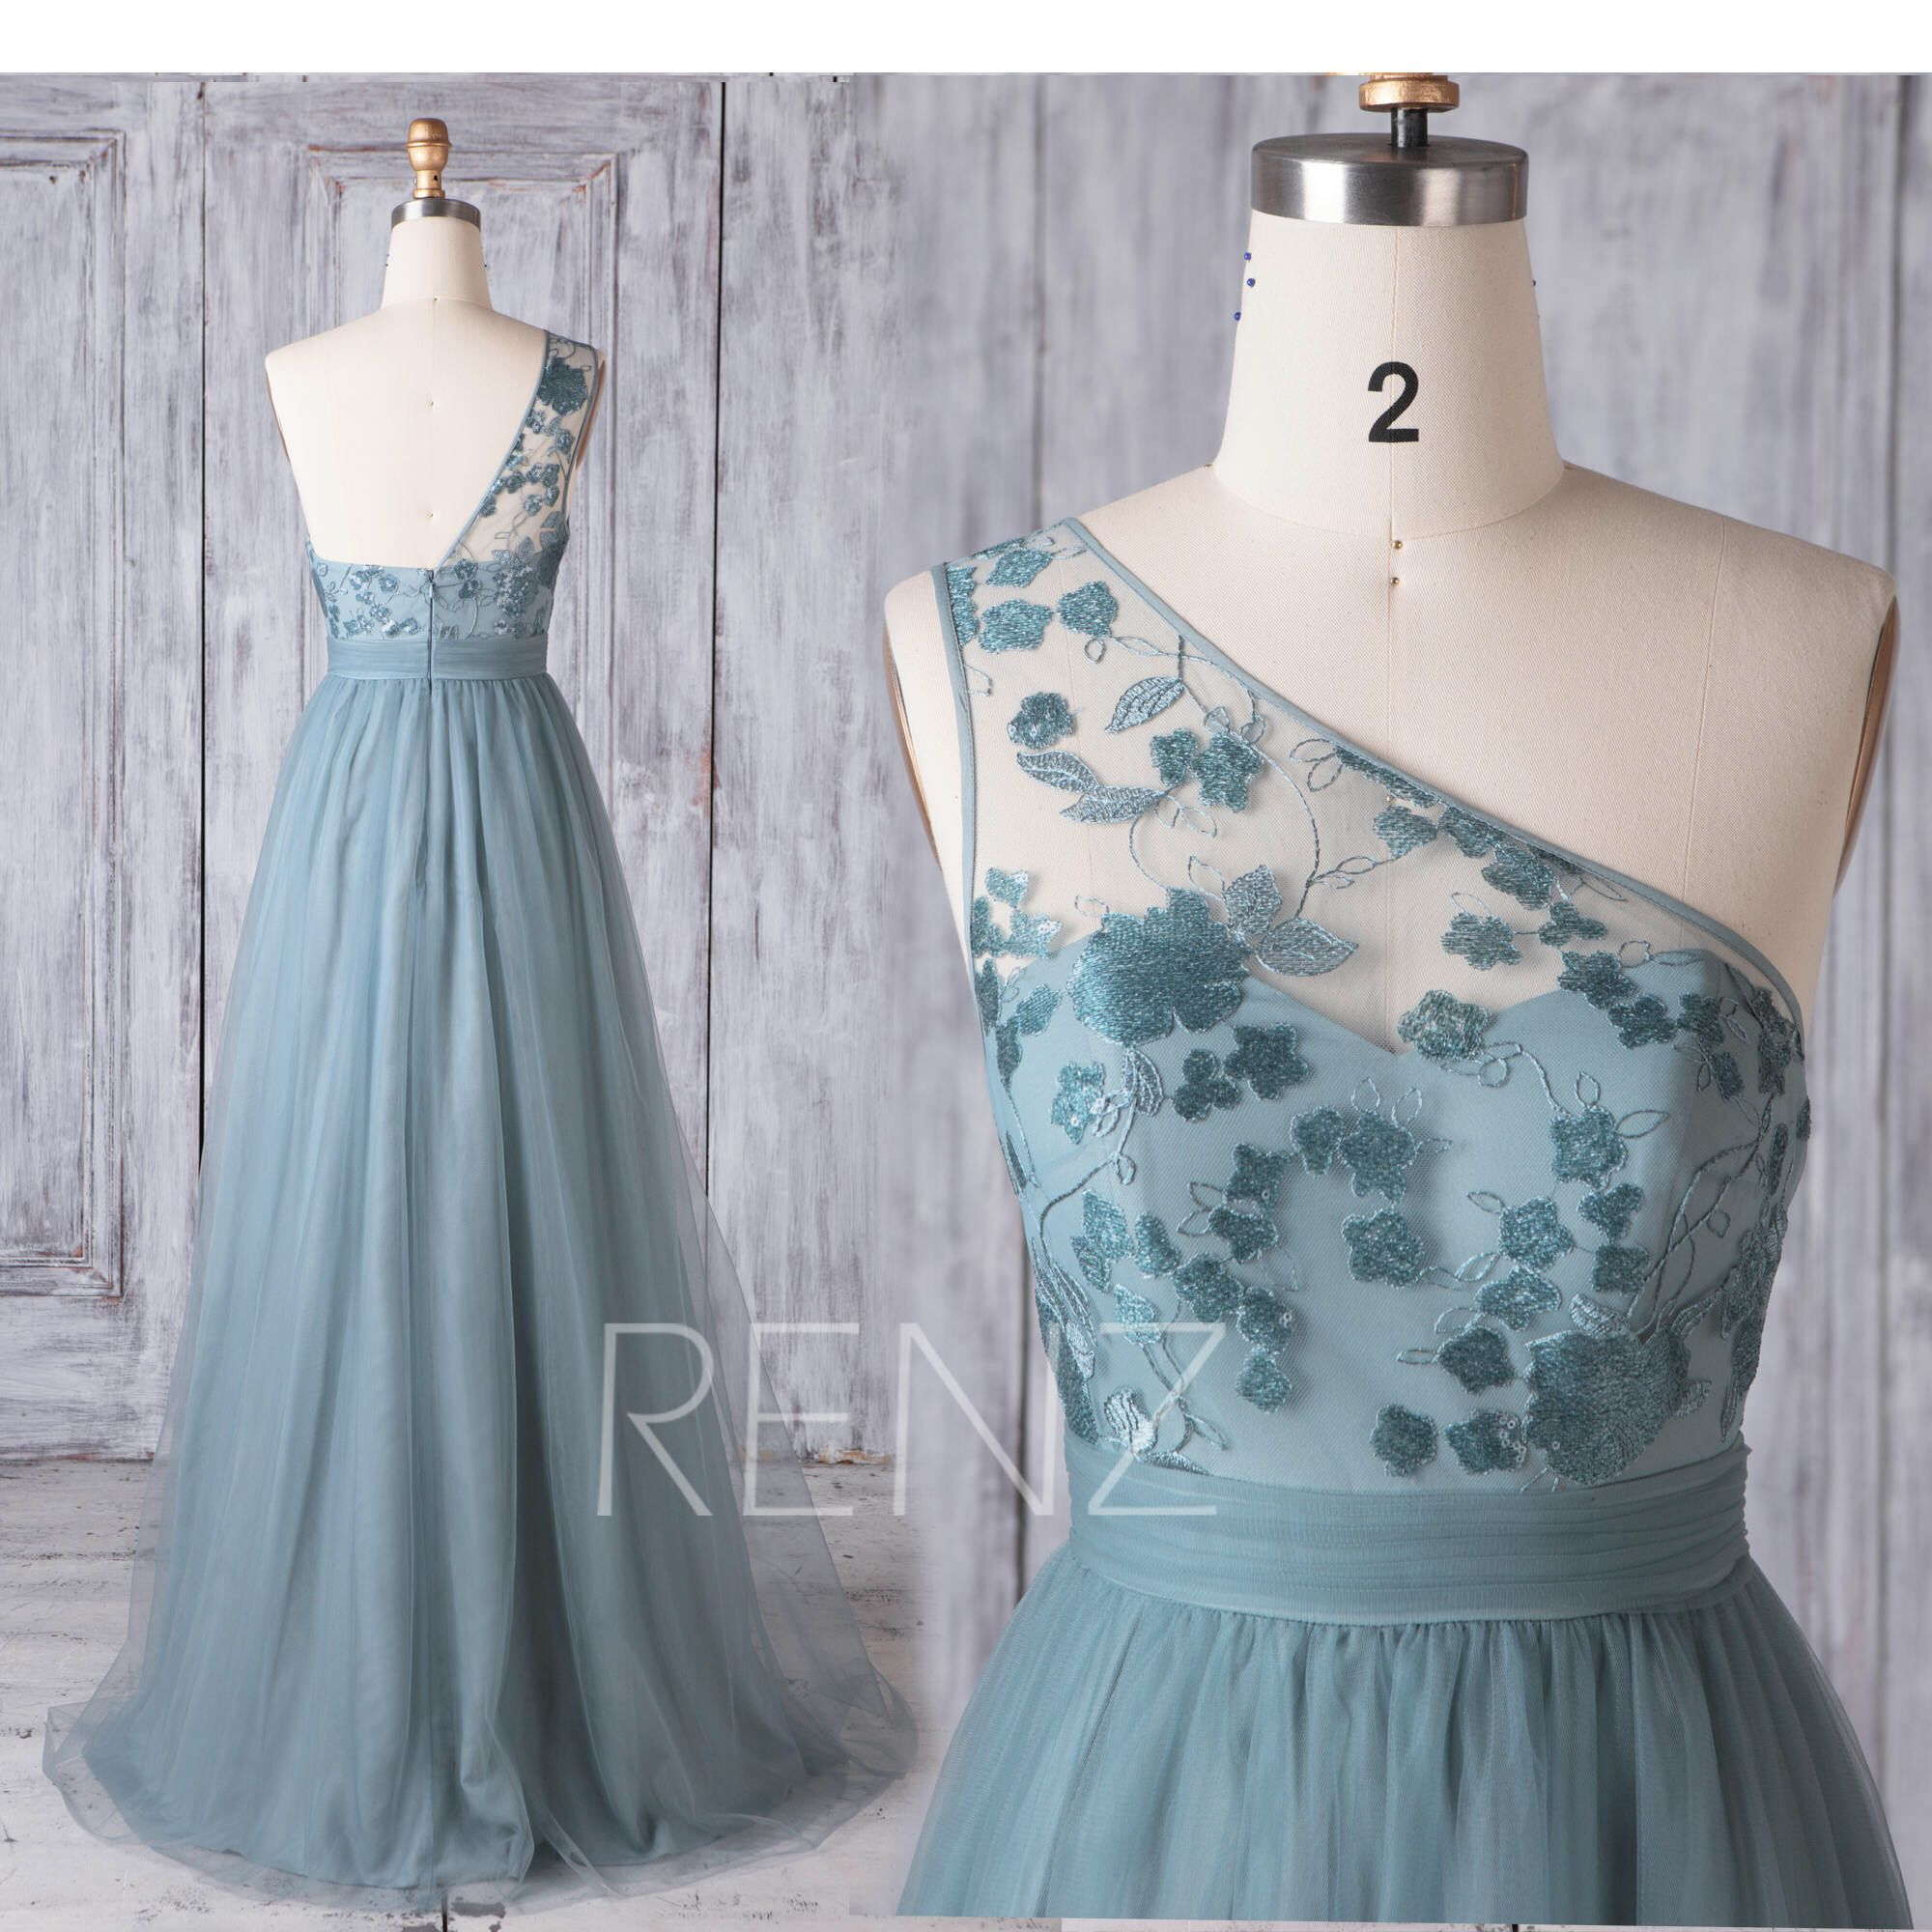 Bridesmaid Dress Dusty Blue Tulle Dress Wedding Dress One Shoulder Maxi Dress Illusion Lace Sweetheart Party Dress A-Line Prom Dress(HS625)